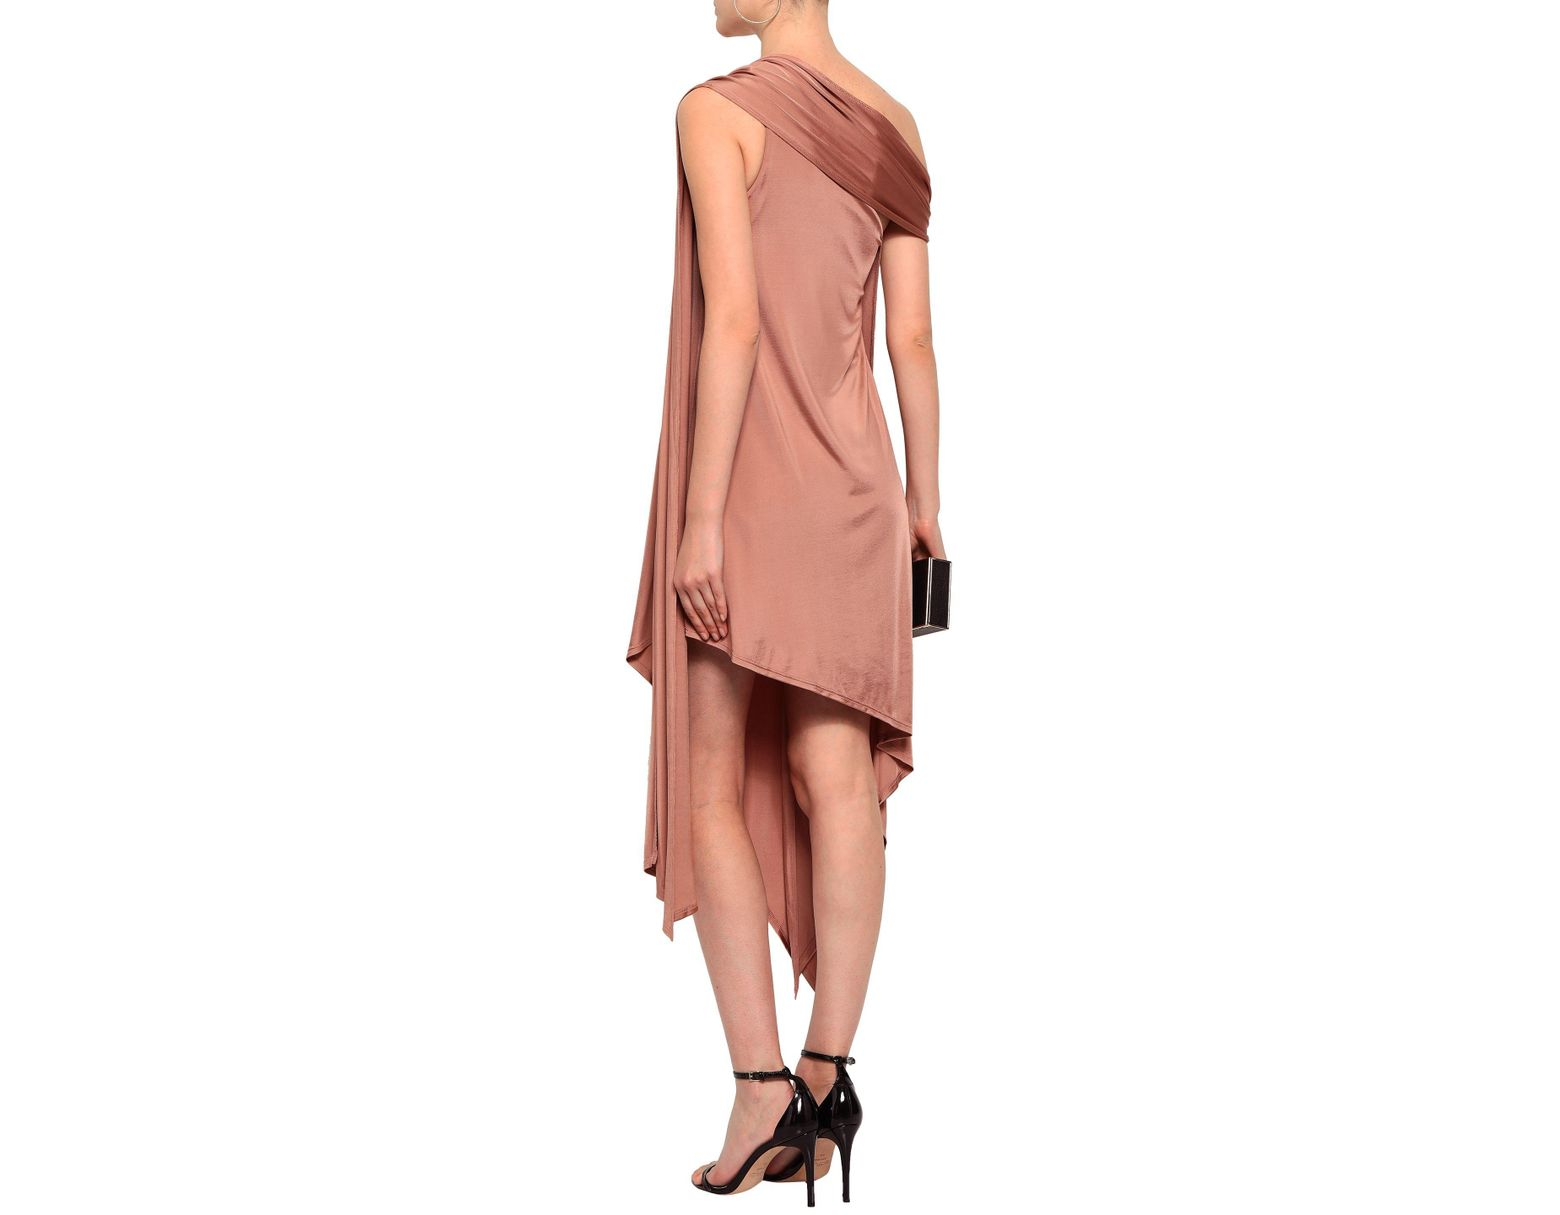 e706b0fd508b Michelle Mason Woman Asymmetric One-shoulder Satin-jersey Mini Dress  Antique Rose in Pink - Lyst